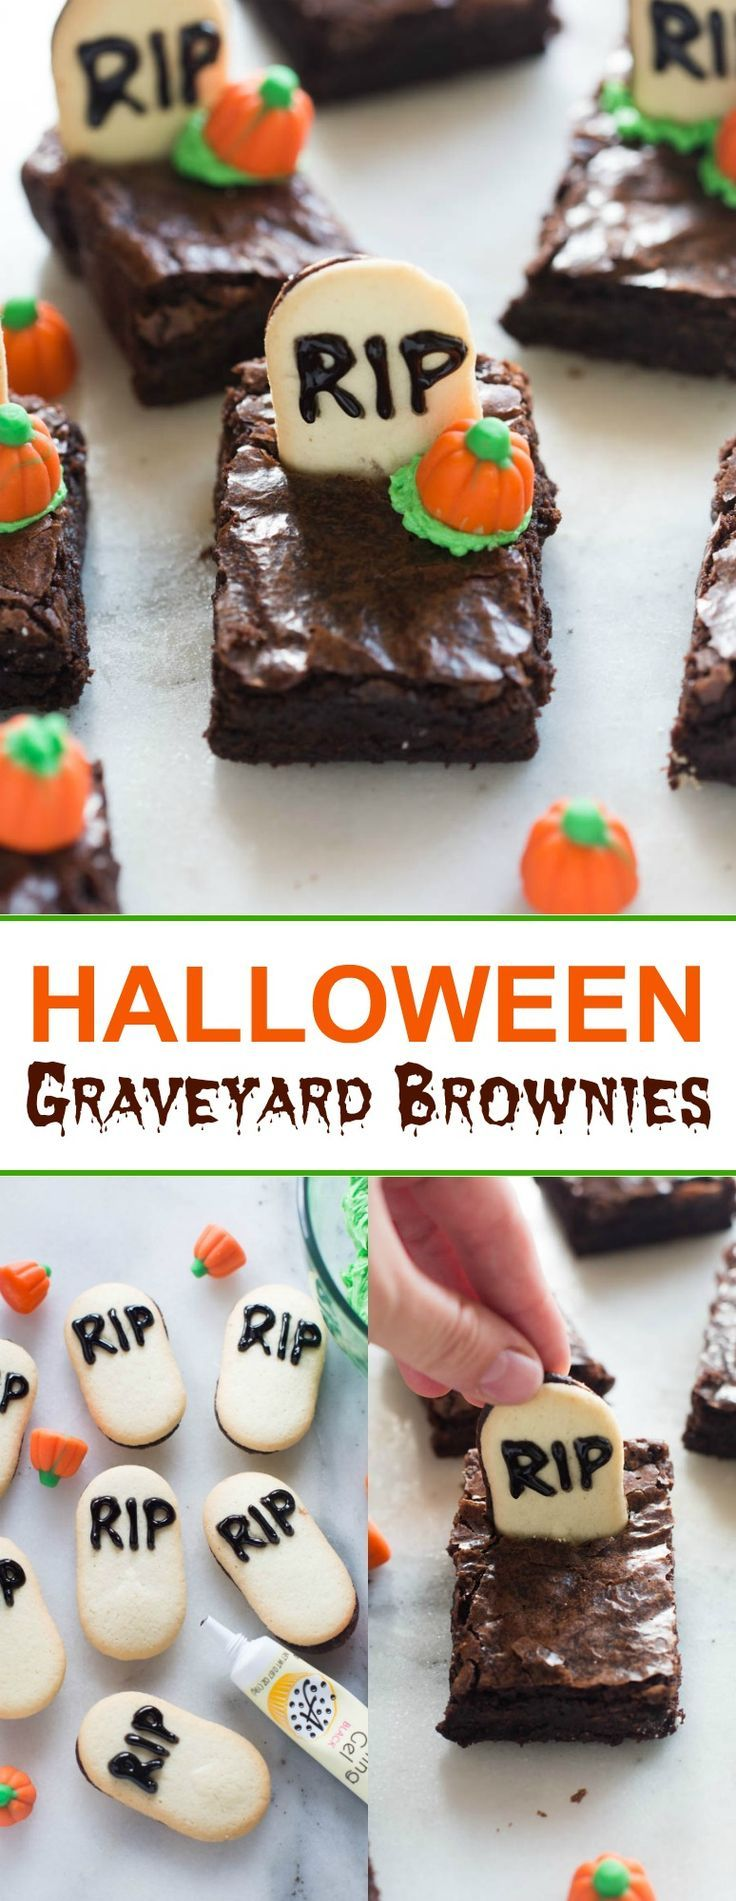 Halloween graveyard brownies are the perfect fun and easy Halloween treat for a party!| tastesbetterfromscratch.com via @betrfromscratch